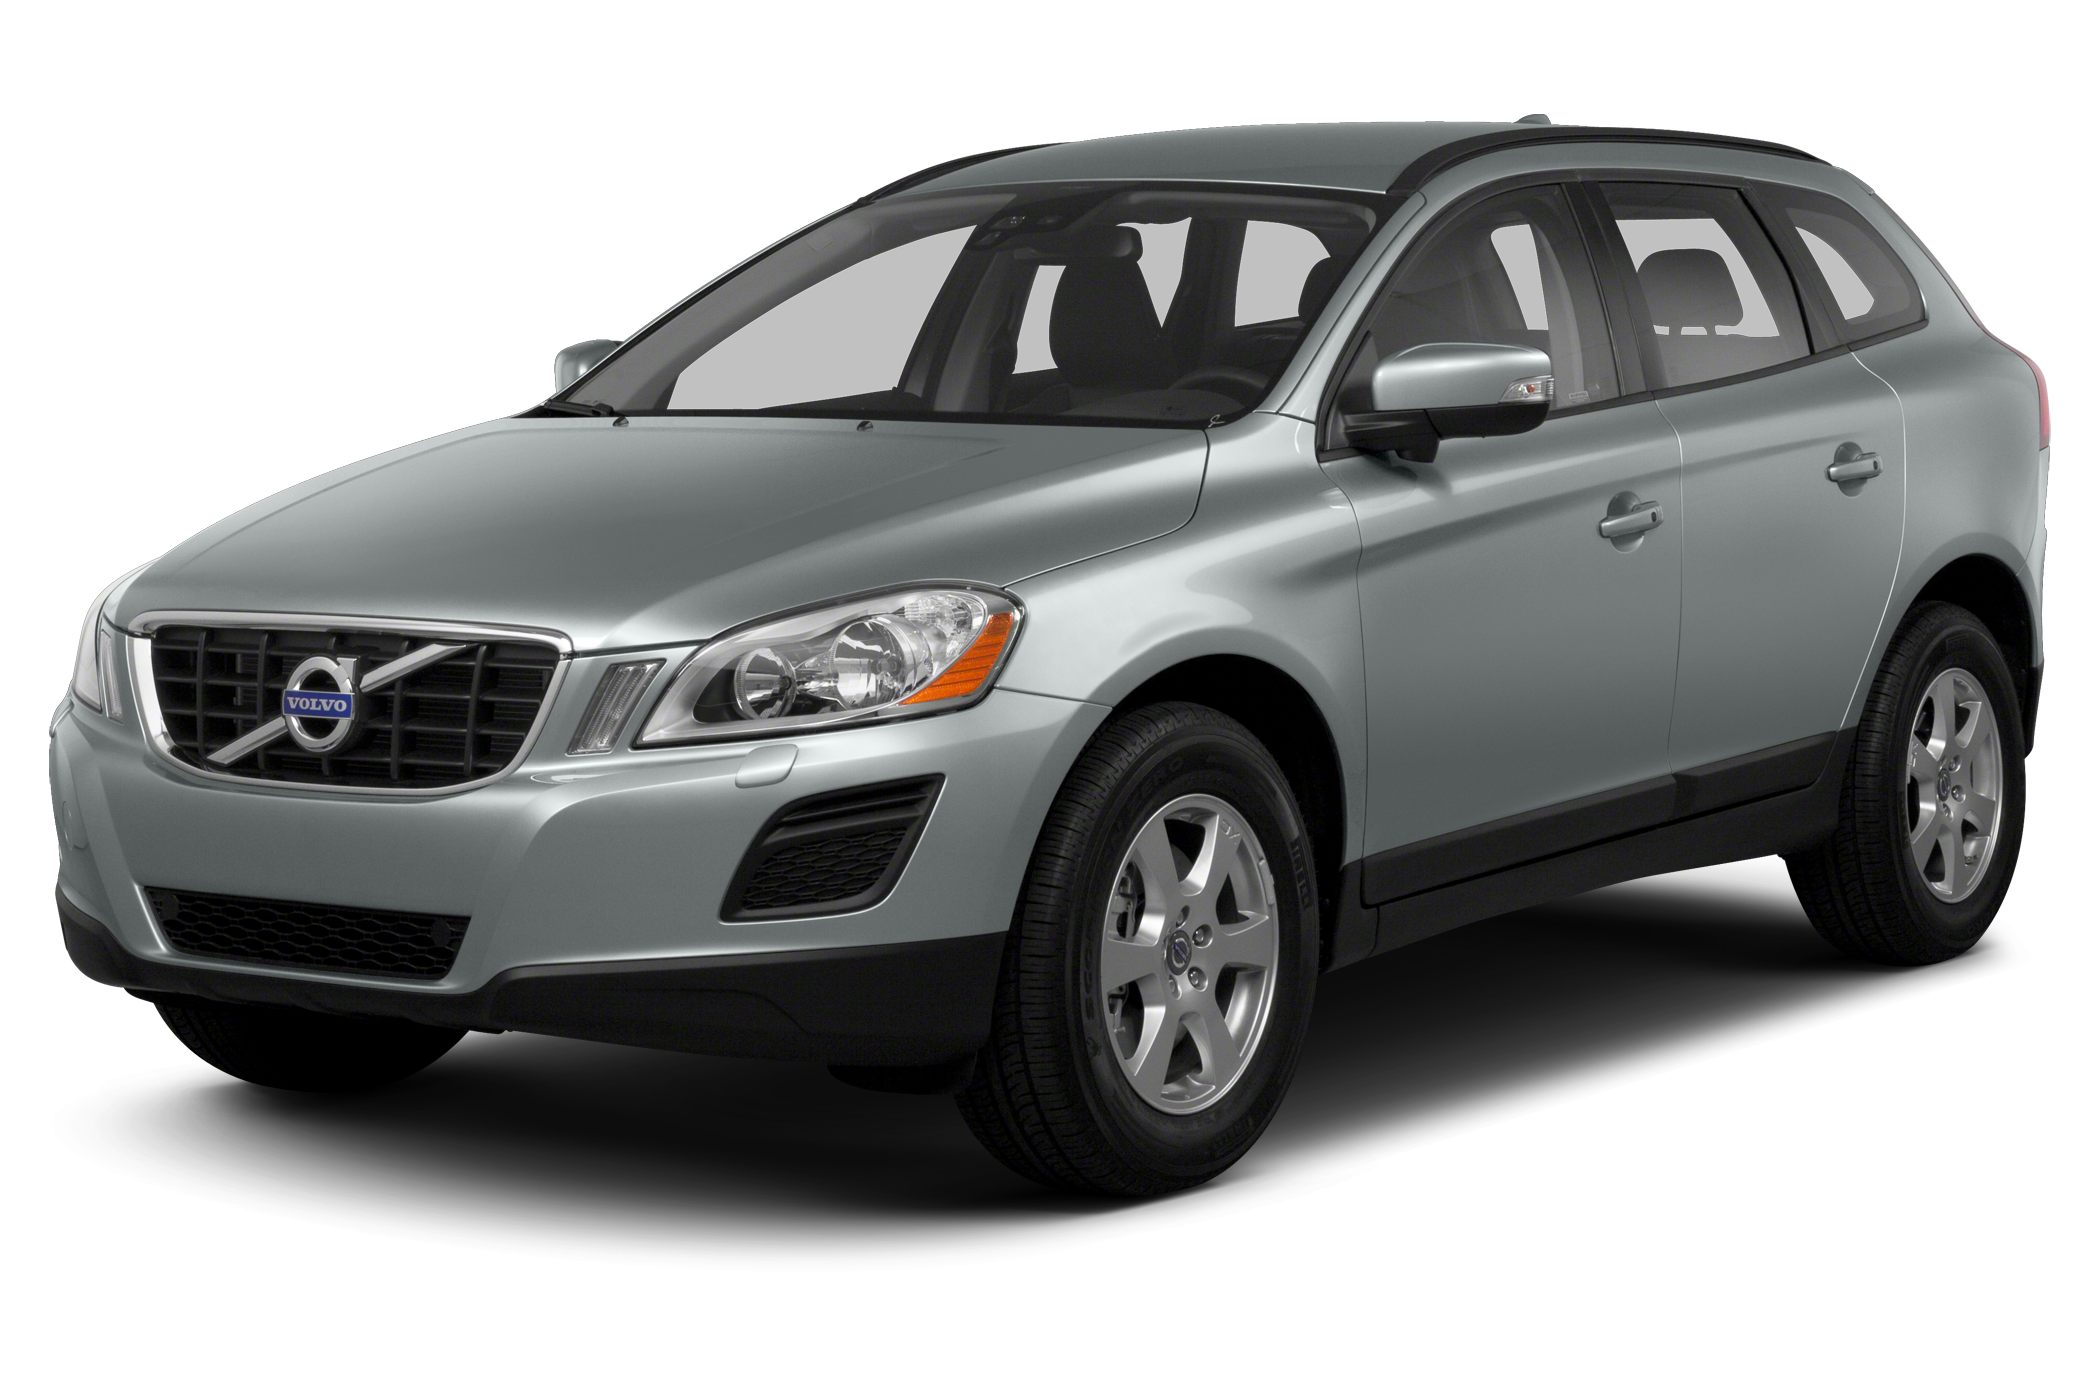 2013 Volvo XC60 3.2 SUV for sale in Columbia for $29,989 with 24,736 miles.